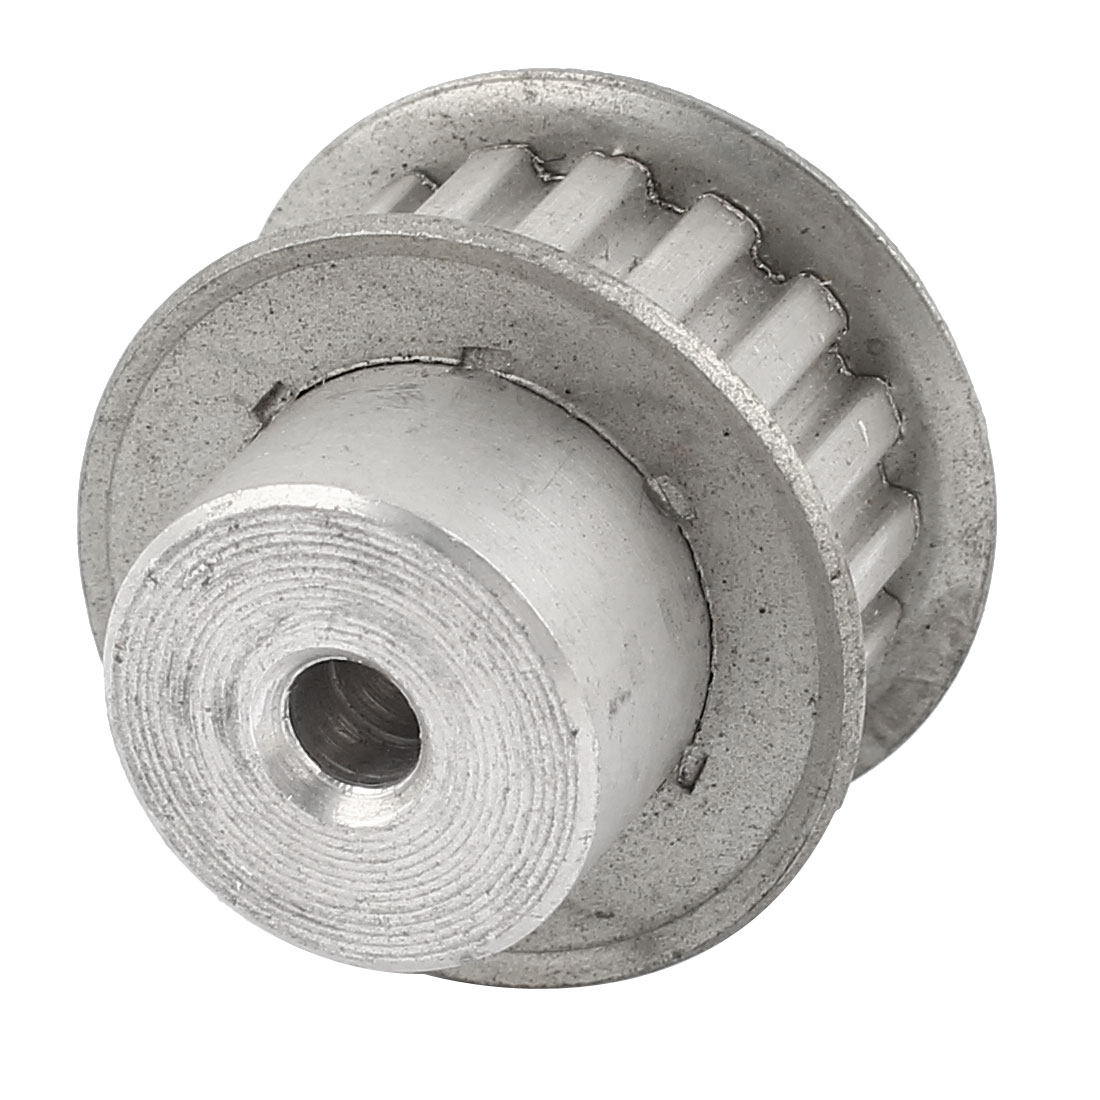 Aluminum Alloy XL Type 17 Teeth 5mm Bore Dia Double Flanged Motor Drive Synchronous Timing Pulley